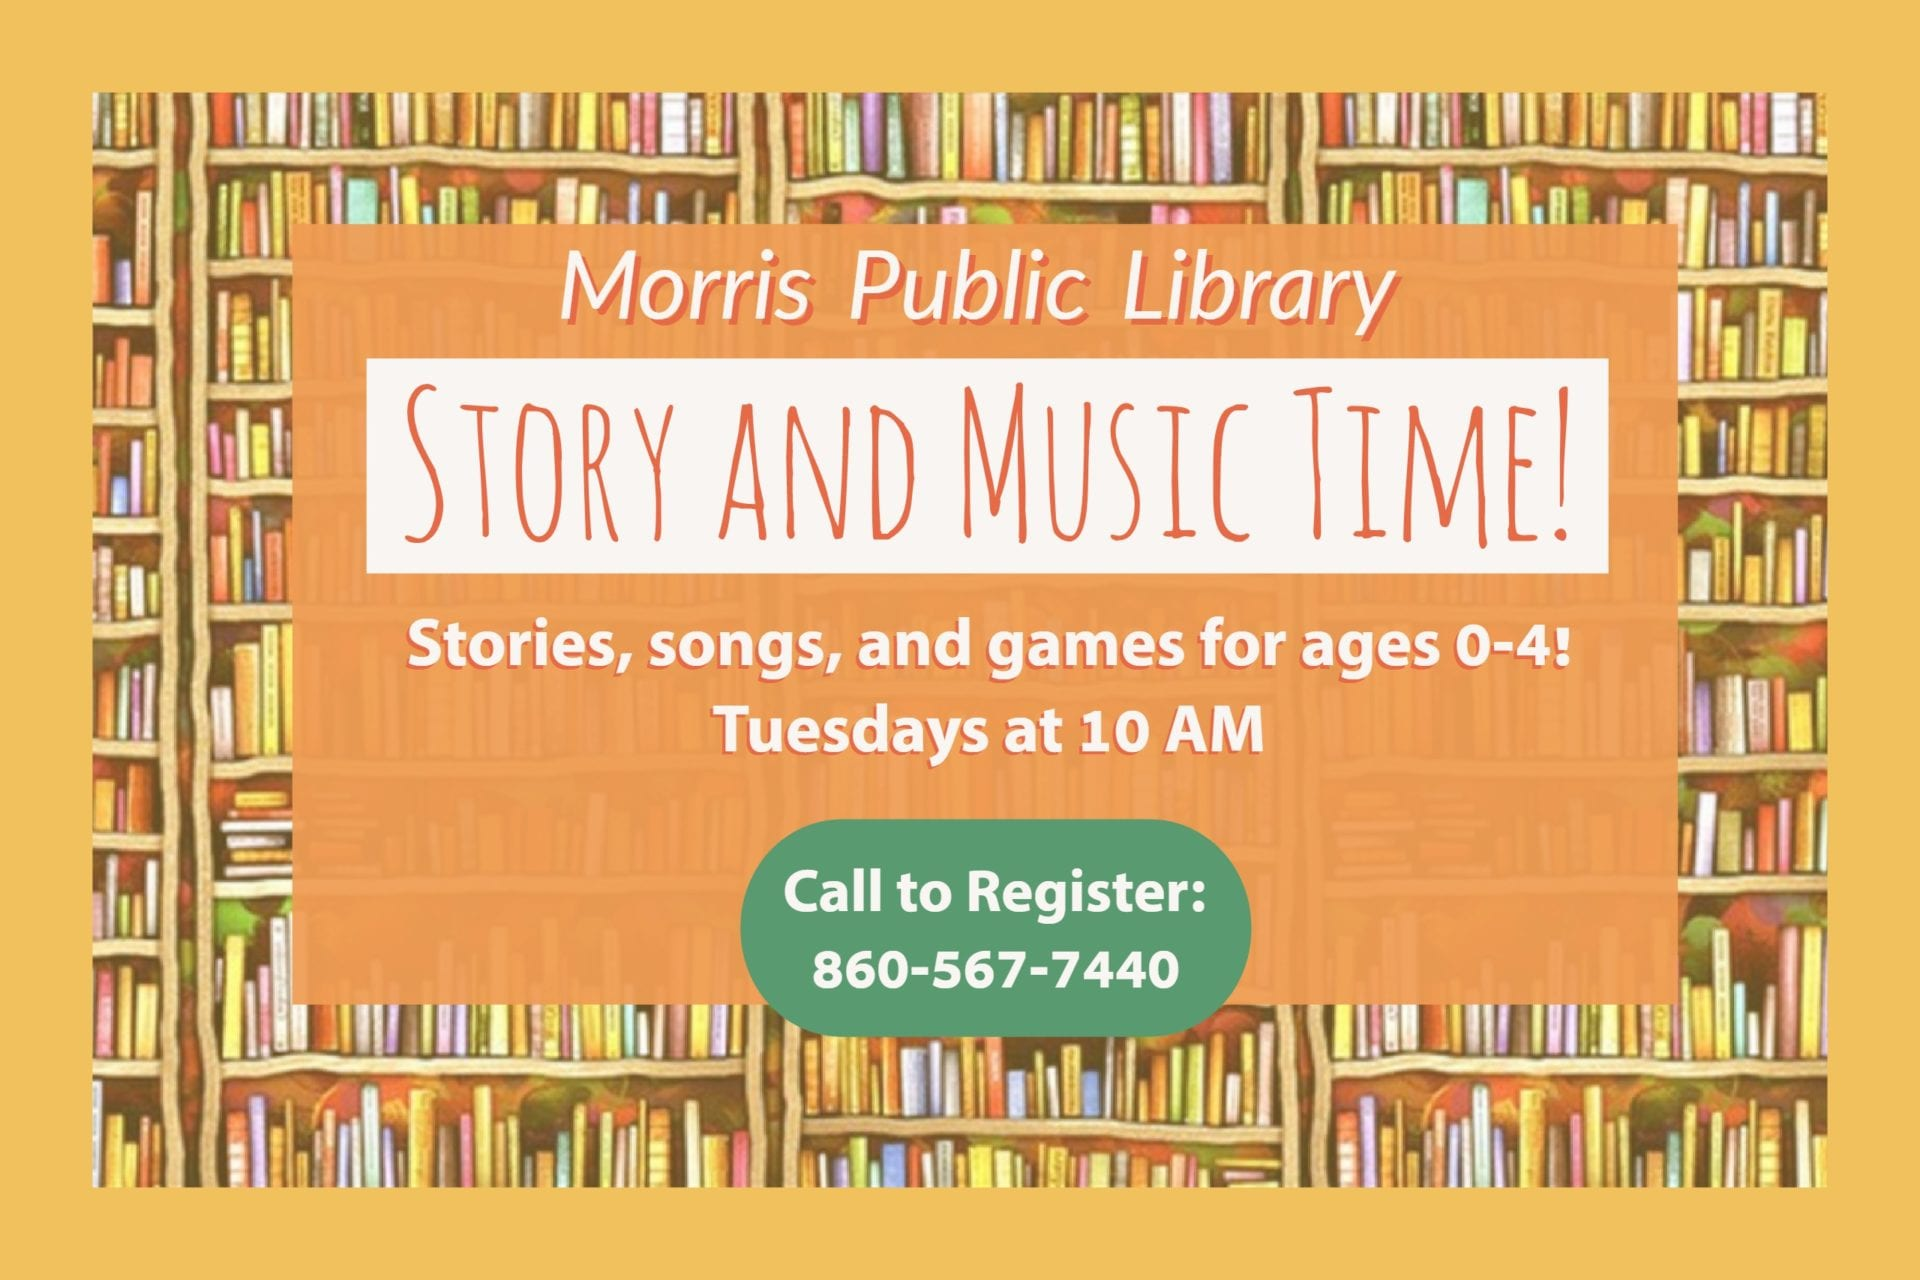 Story_Music_Time_Flyer Morris Public Library